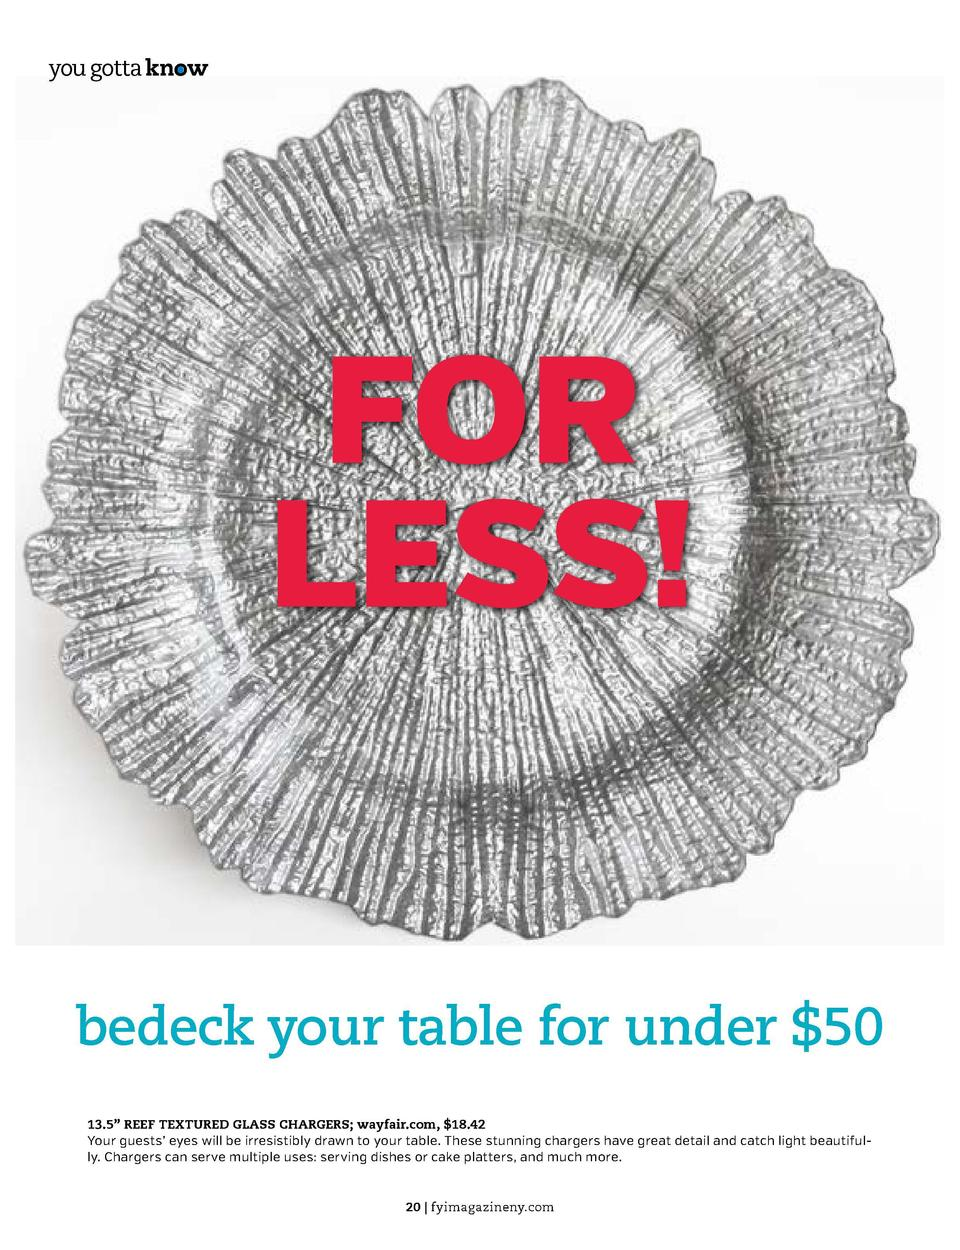 you gotta know  you gotta know  FOR LESS  bedeck your table for under  50  LIBBEY 12 OZ. CARATS GLASSES  SET OF 4  target....